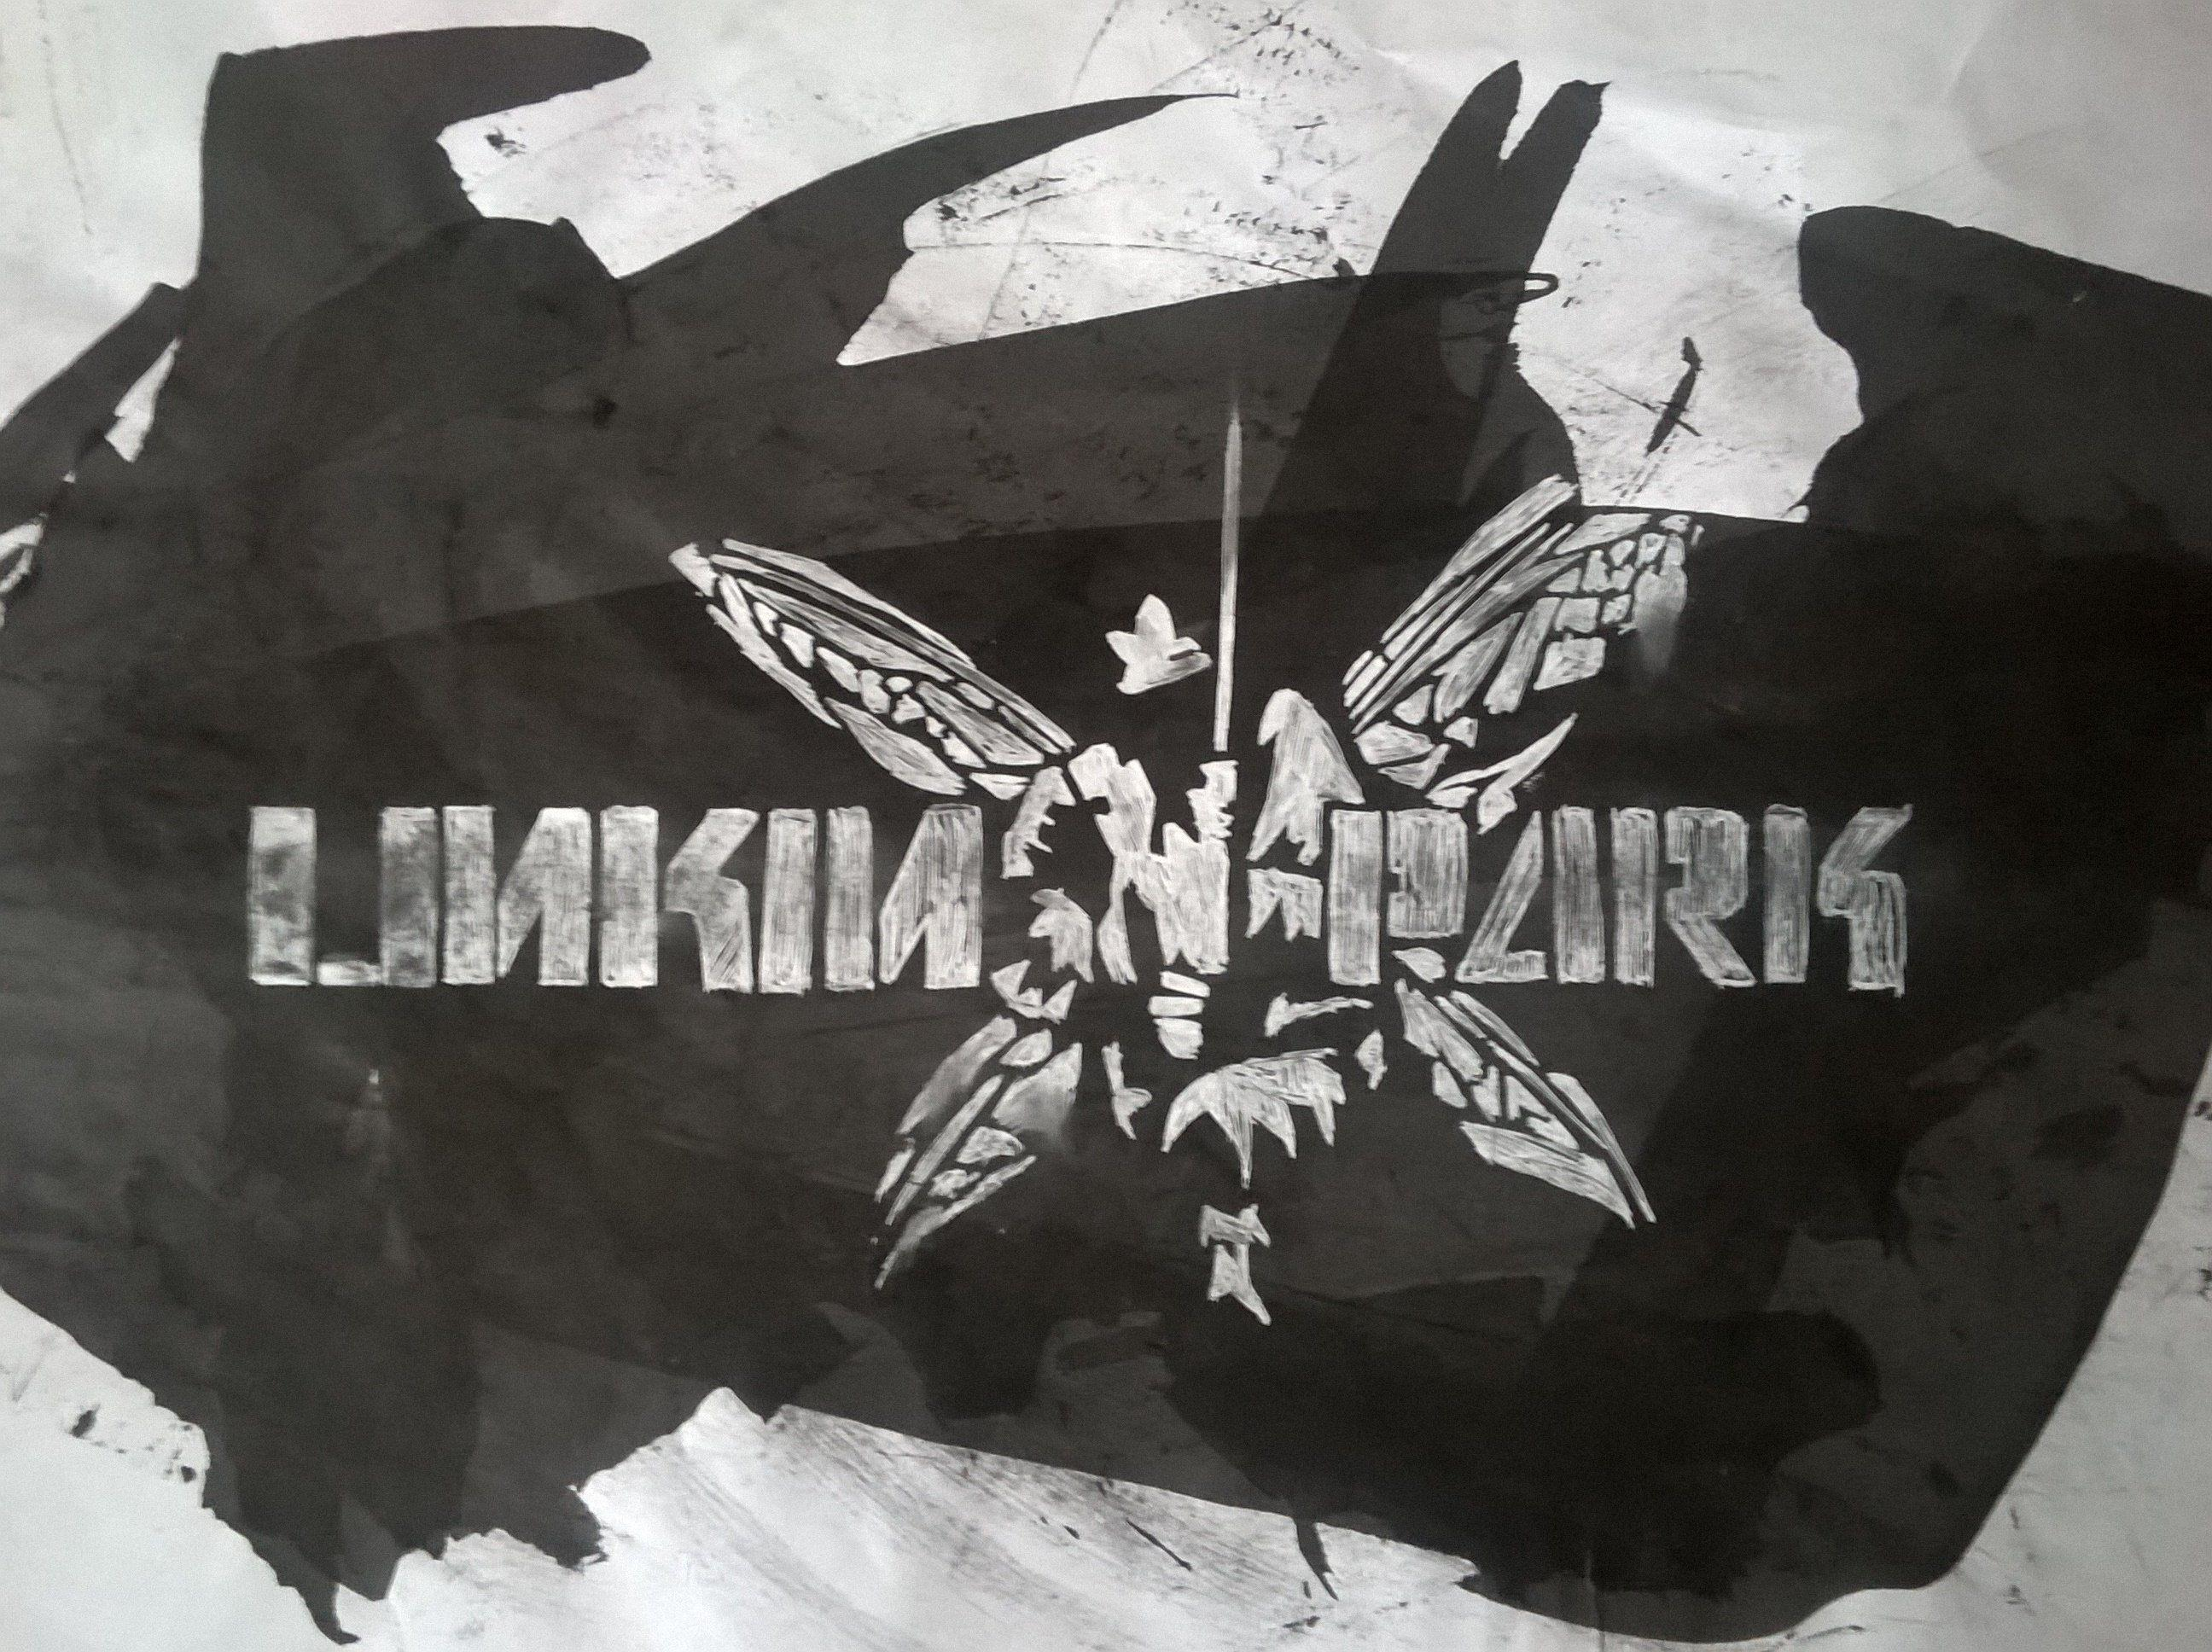 Linkin Park Hybrid Theory Wallpapers High Quality Zabrdast